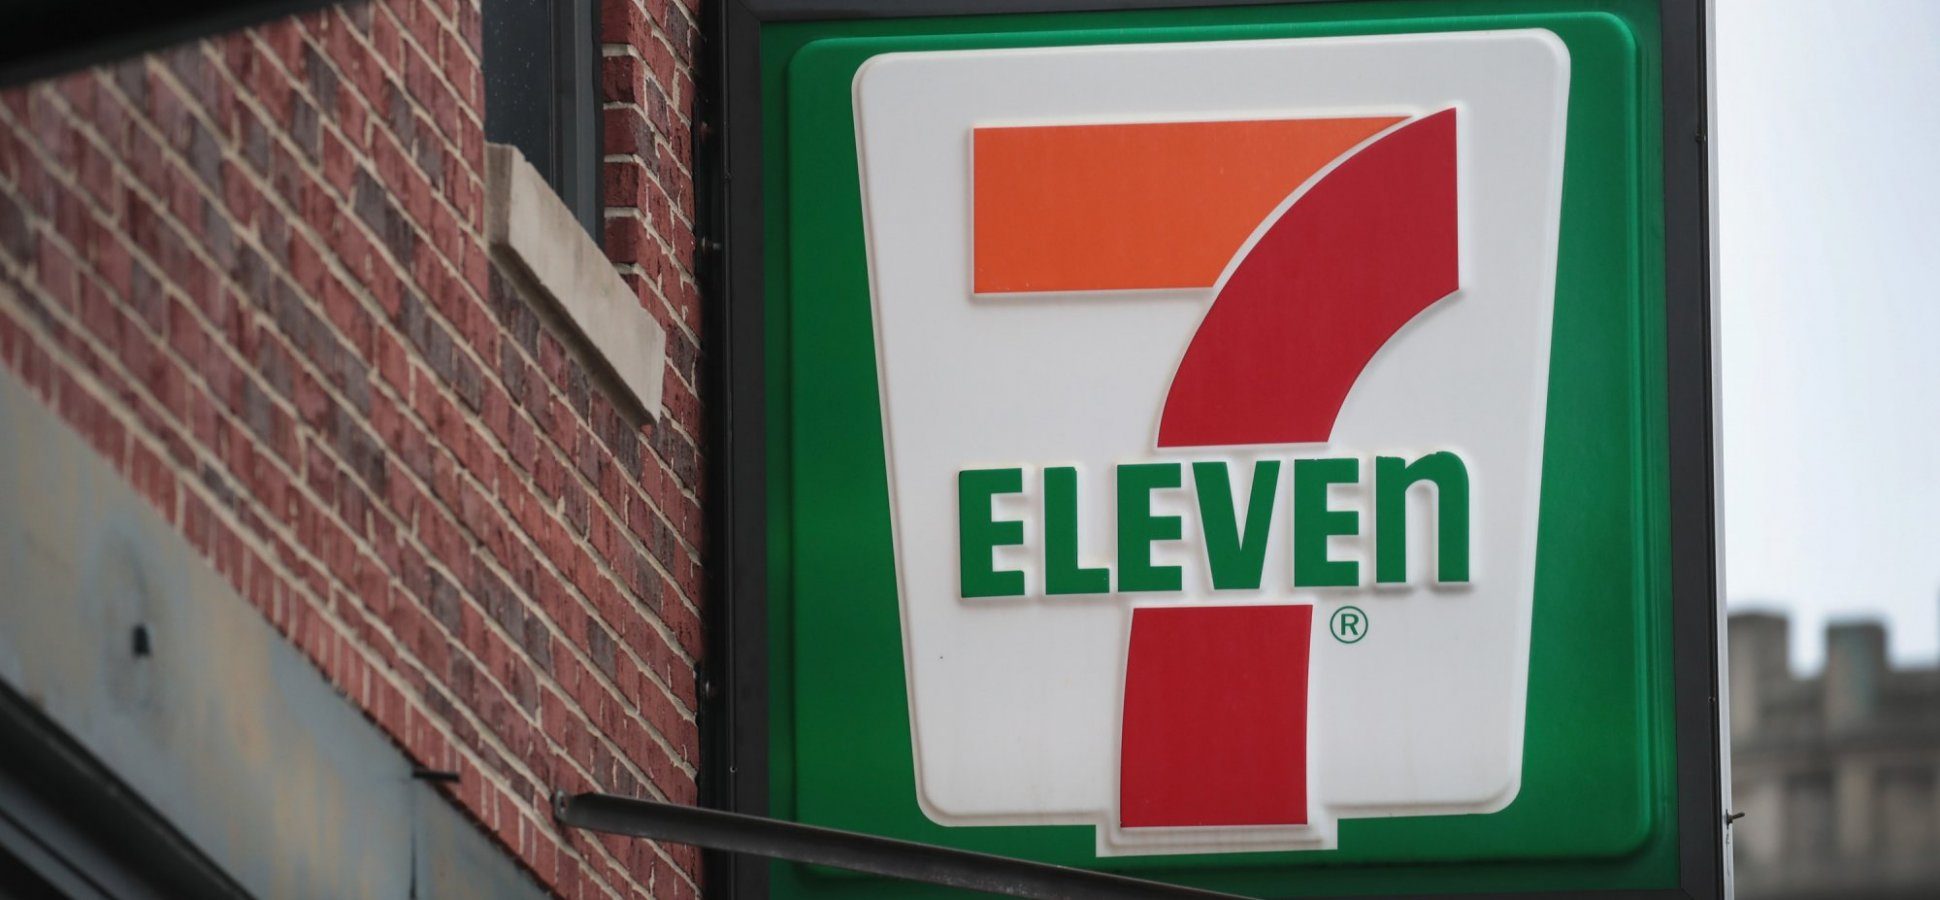 7-Eleven Just Announced a New Service That Sounds Too Good to Be True